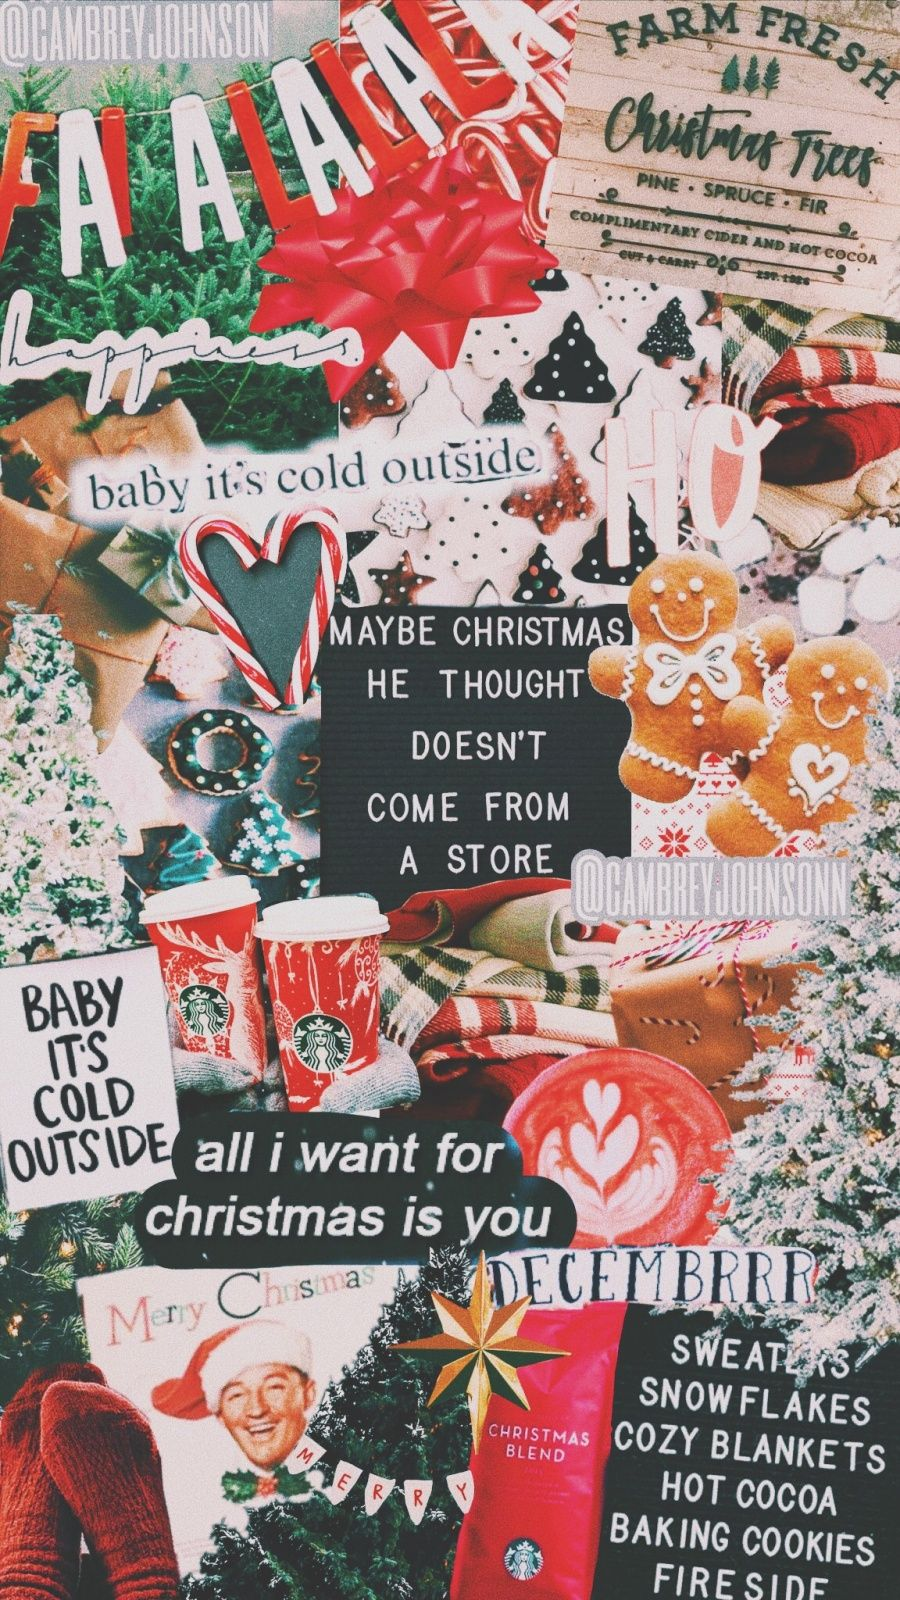 VSCO cambreyjohnson Images Cute christmas wallpaper